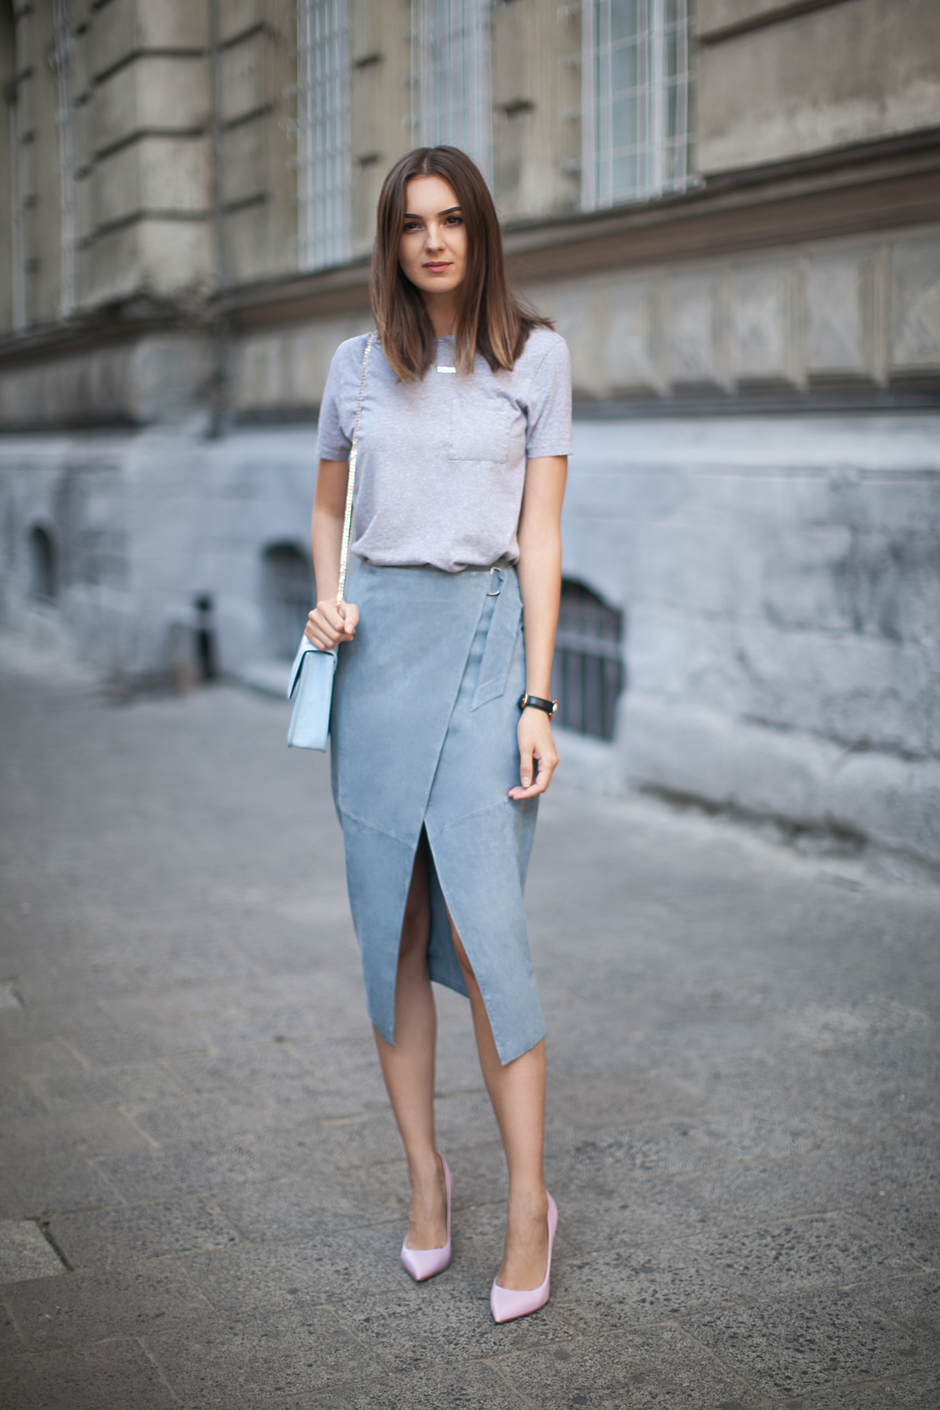 asos-grey-suede-skirt-outfit-fashion-blog